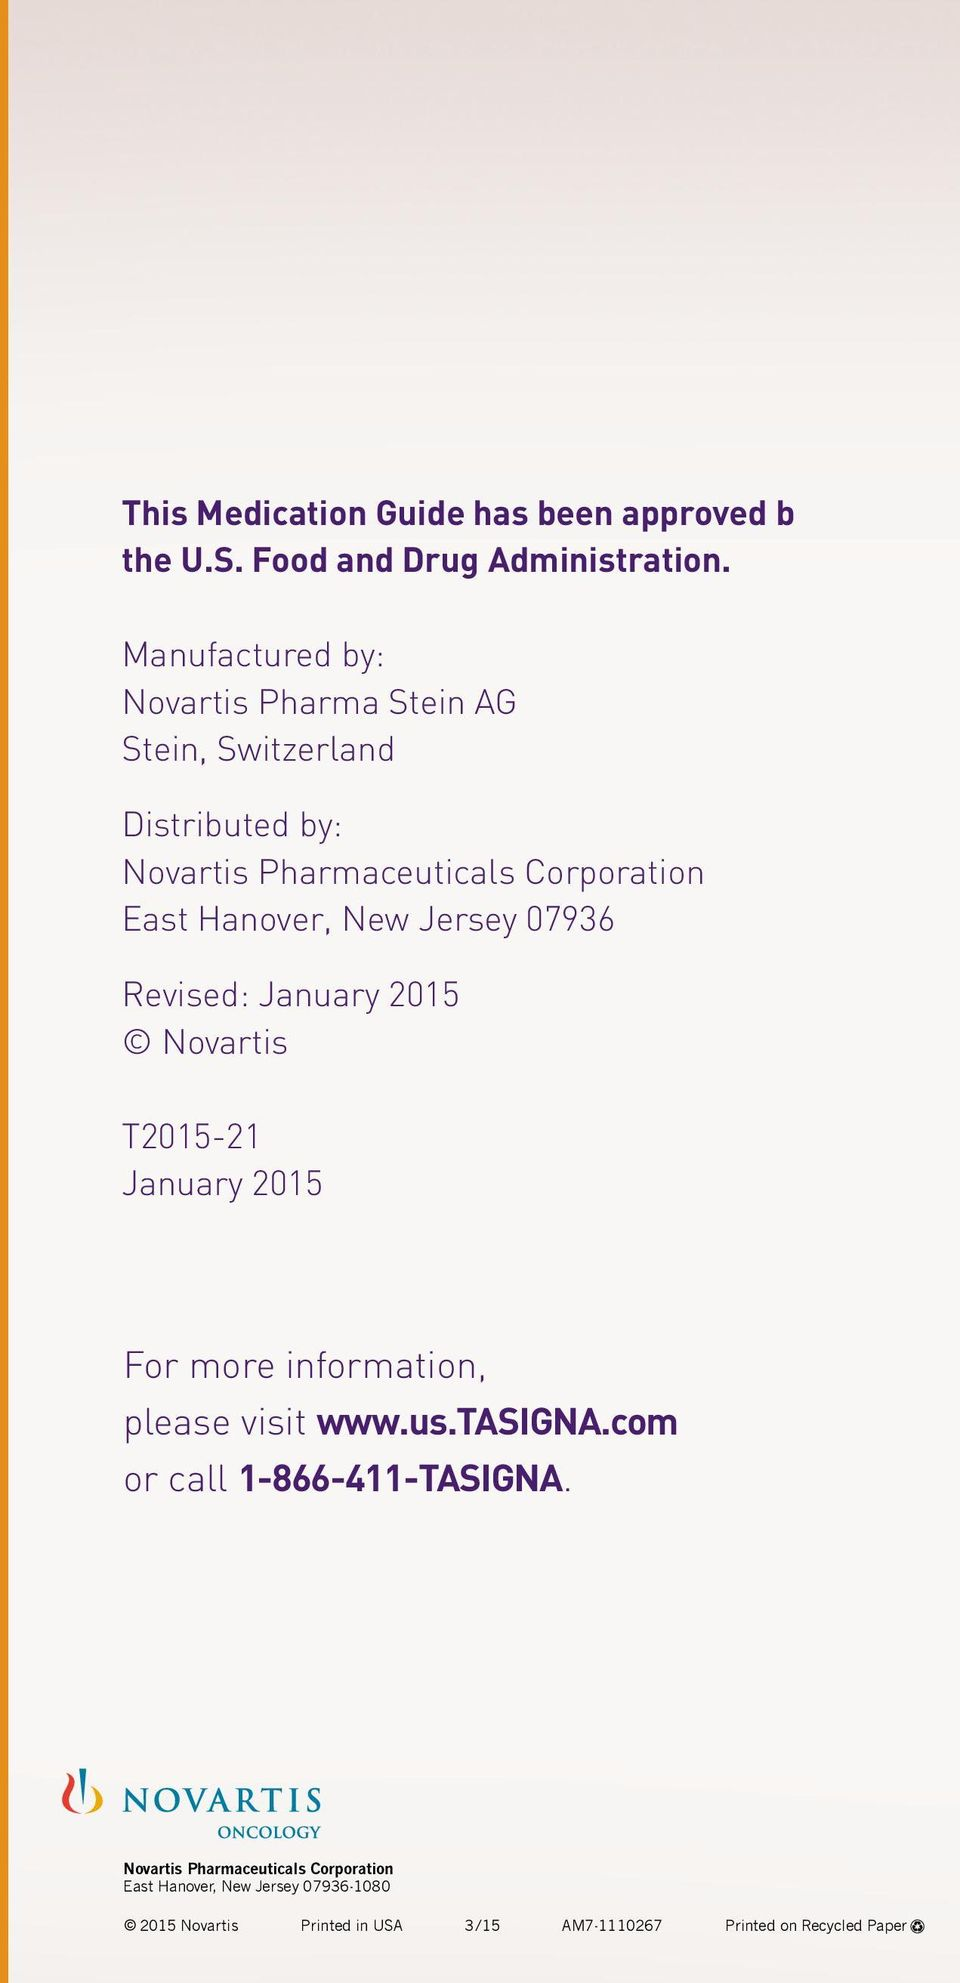 Hanover, New Jersey 07936 Revised: January 2015 Novartis T2015-21 January 2015 For more information, please visit www.us.